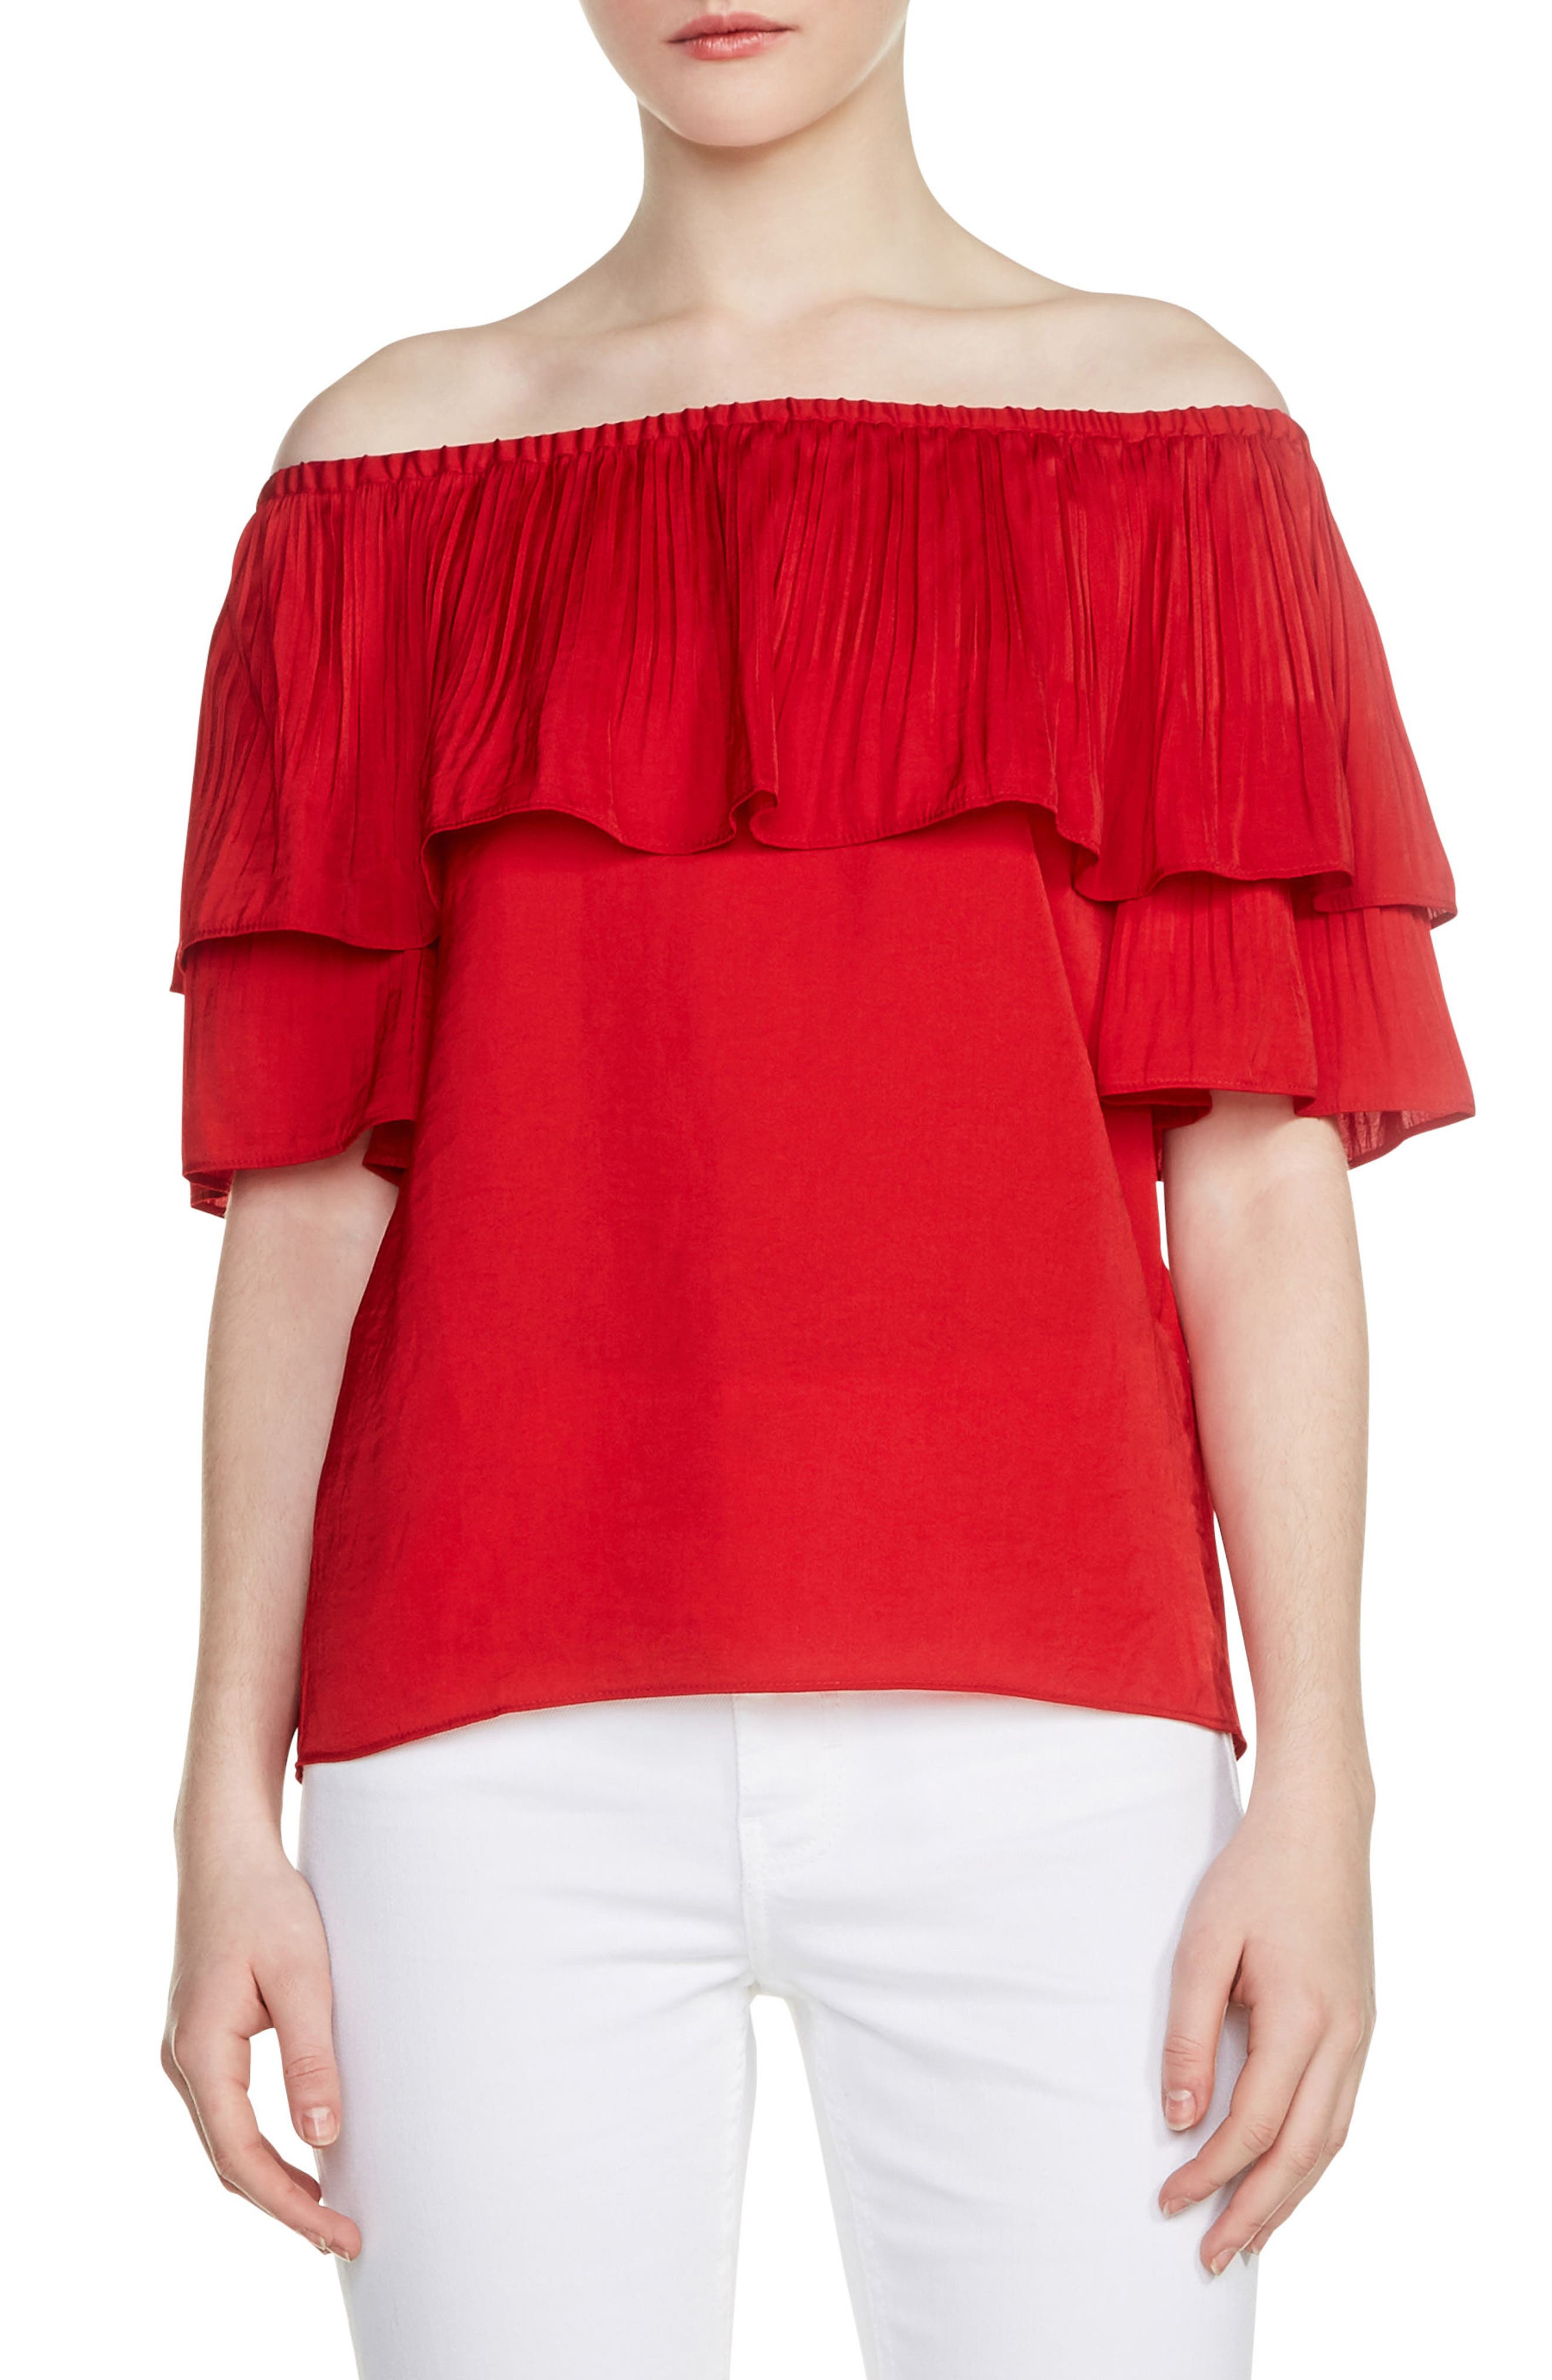 Locao Off the Shoulder Top,                         Main,                         color, Rouge